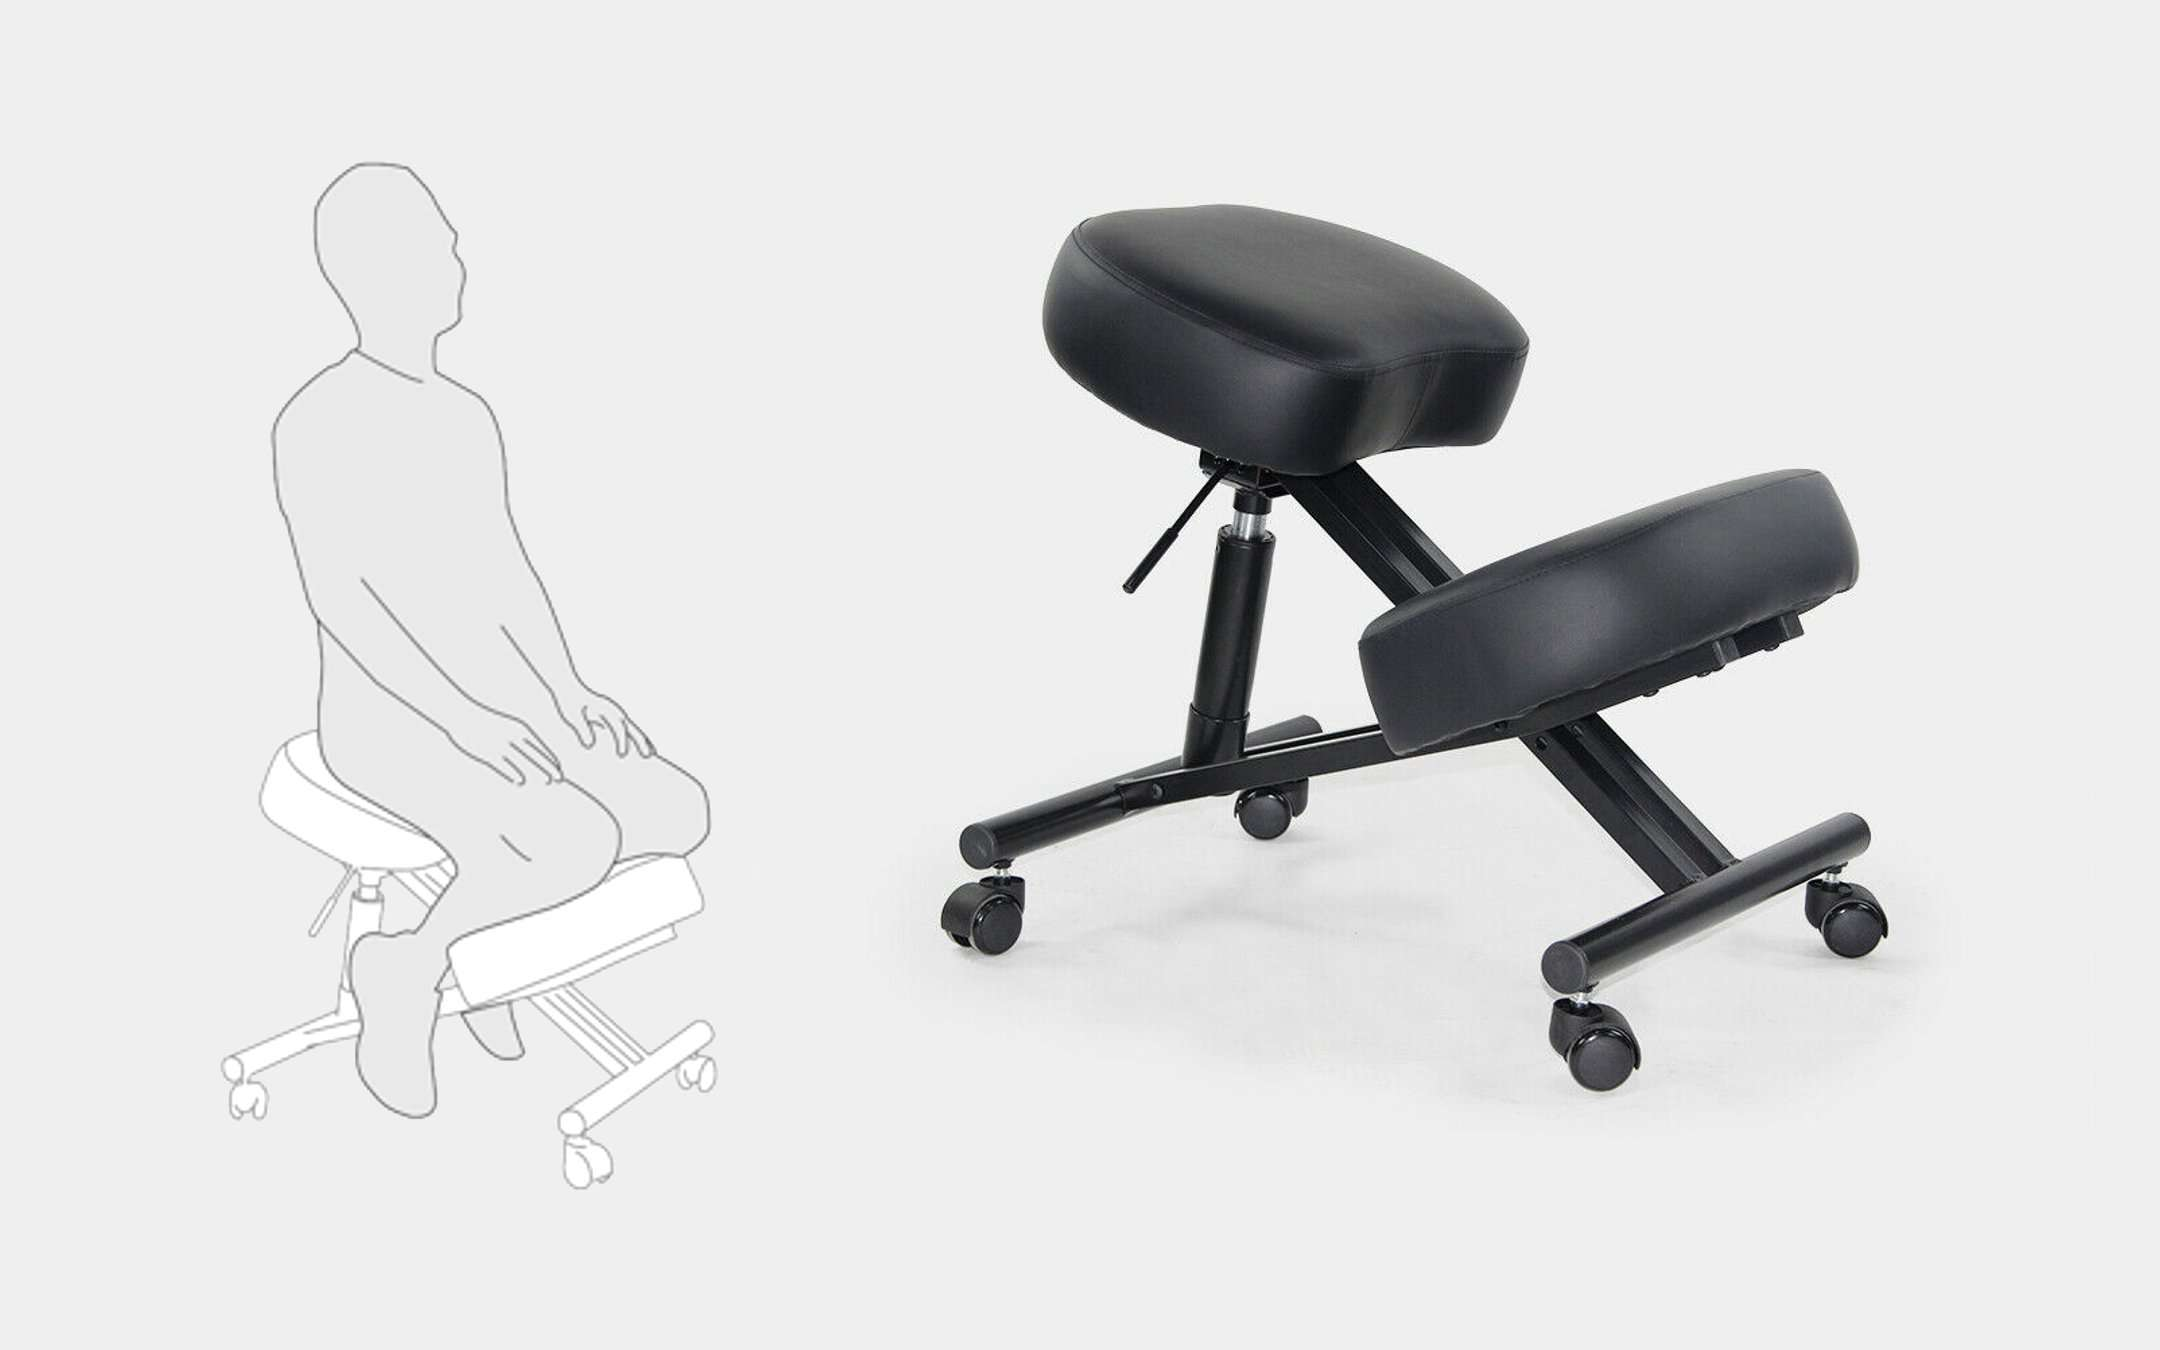 The chair you would have liked to try, with a 33% discount